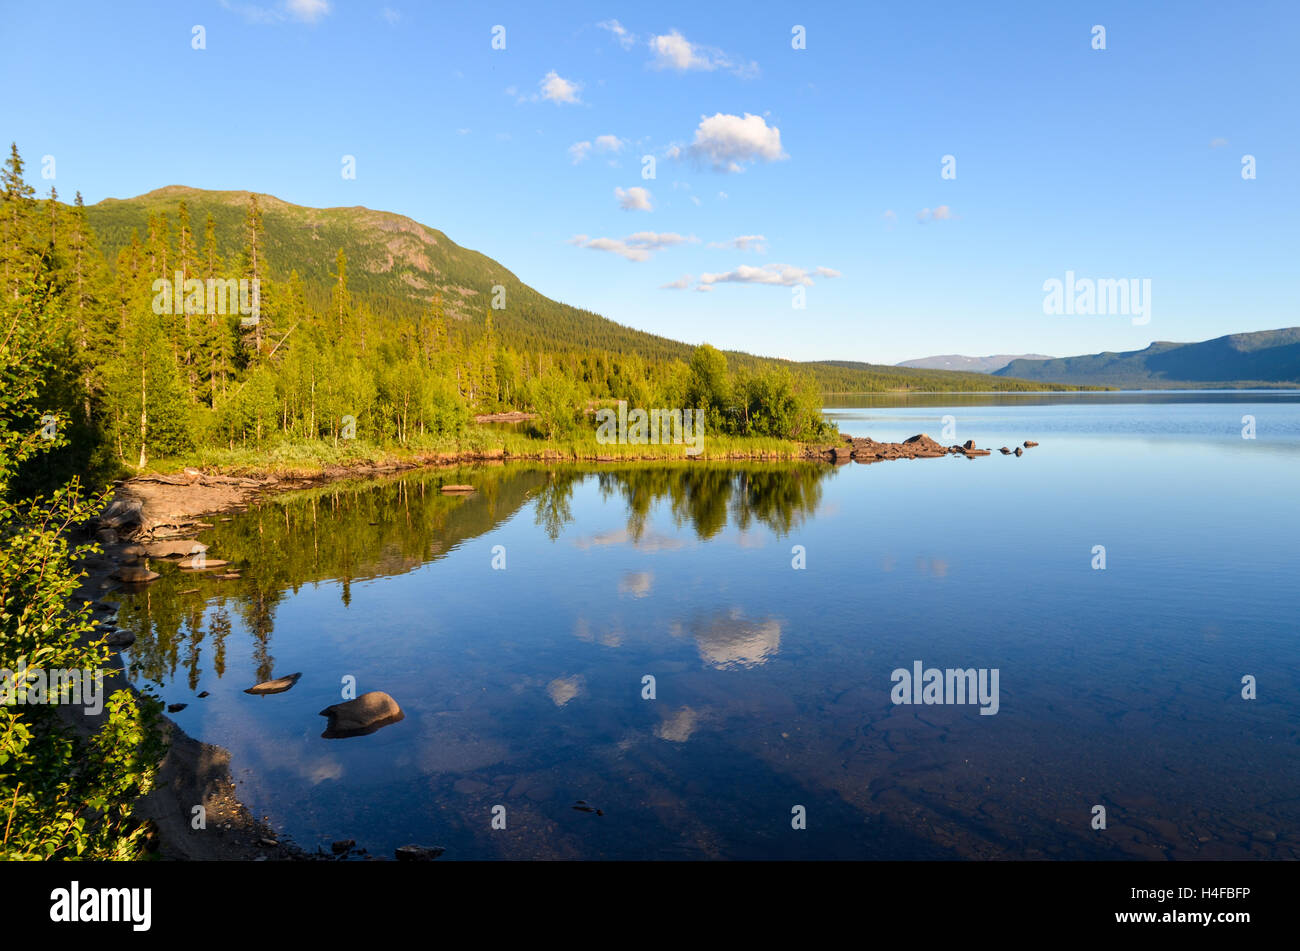 Sunset light on trees in Northern Sweden by a lake near the Blue Road - Stock Image